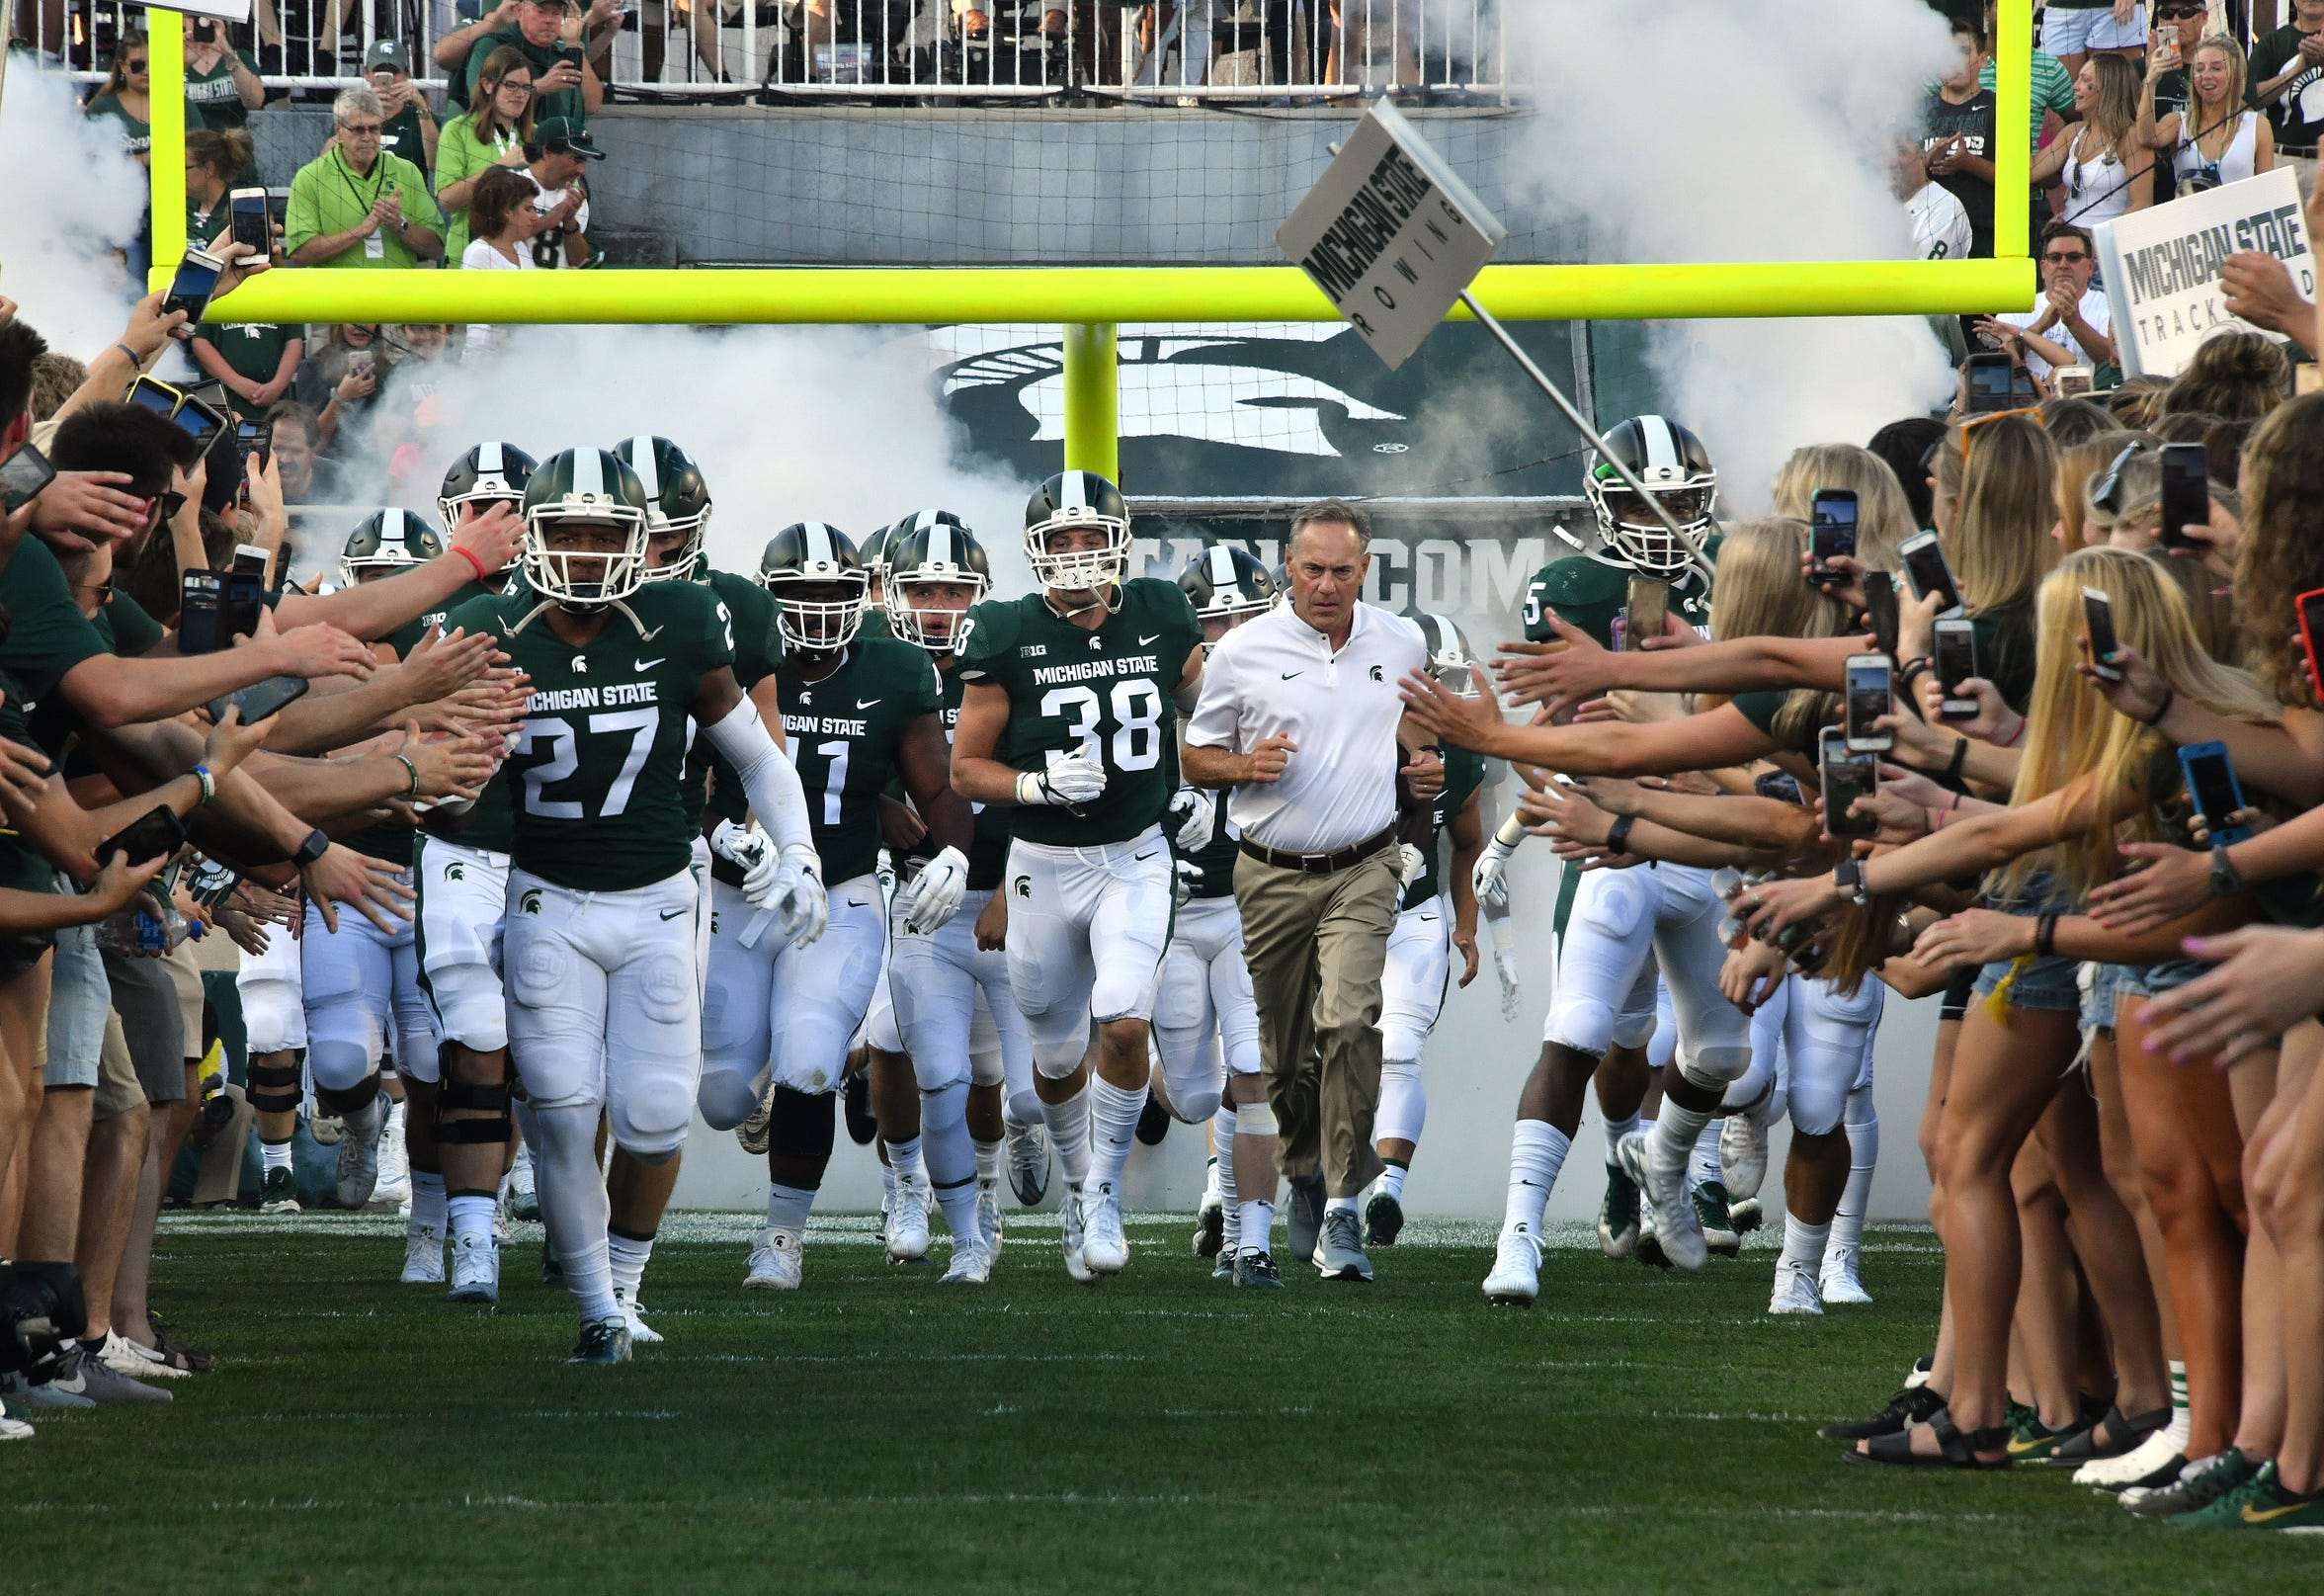 Mark Dantonio and his team run onto the field before Michigan State plays Utah State in 2018.